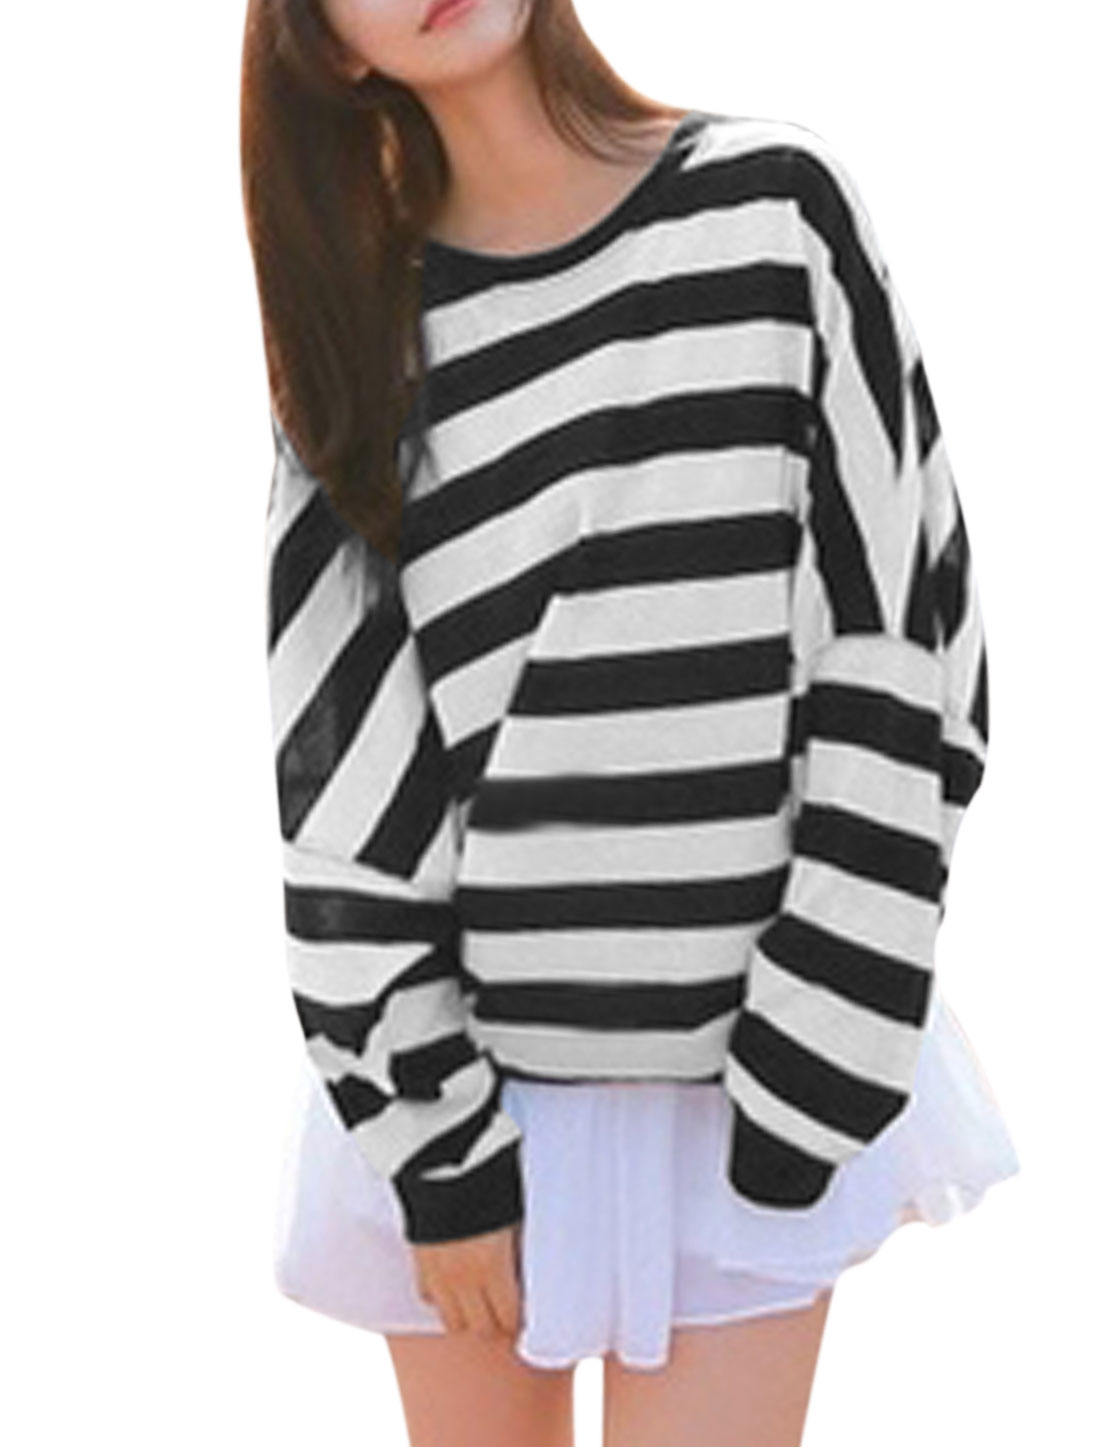 Women Round Neck Stripes Batwing Sleeve Leisure Tunic Top Black White S